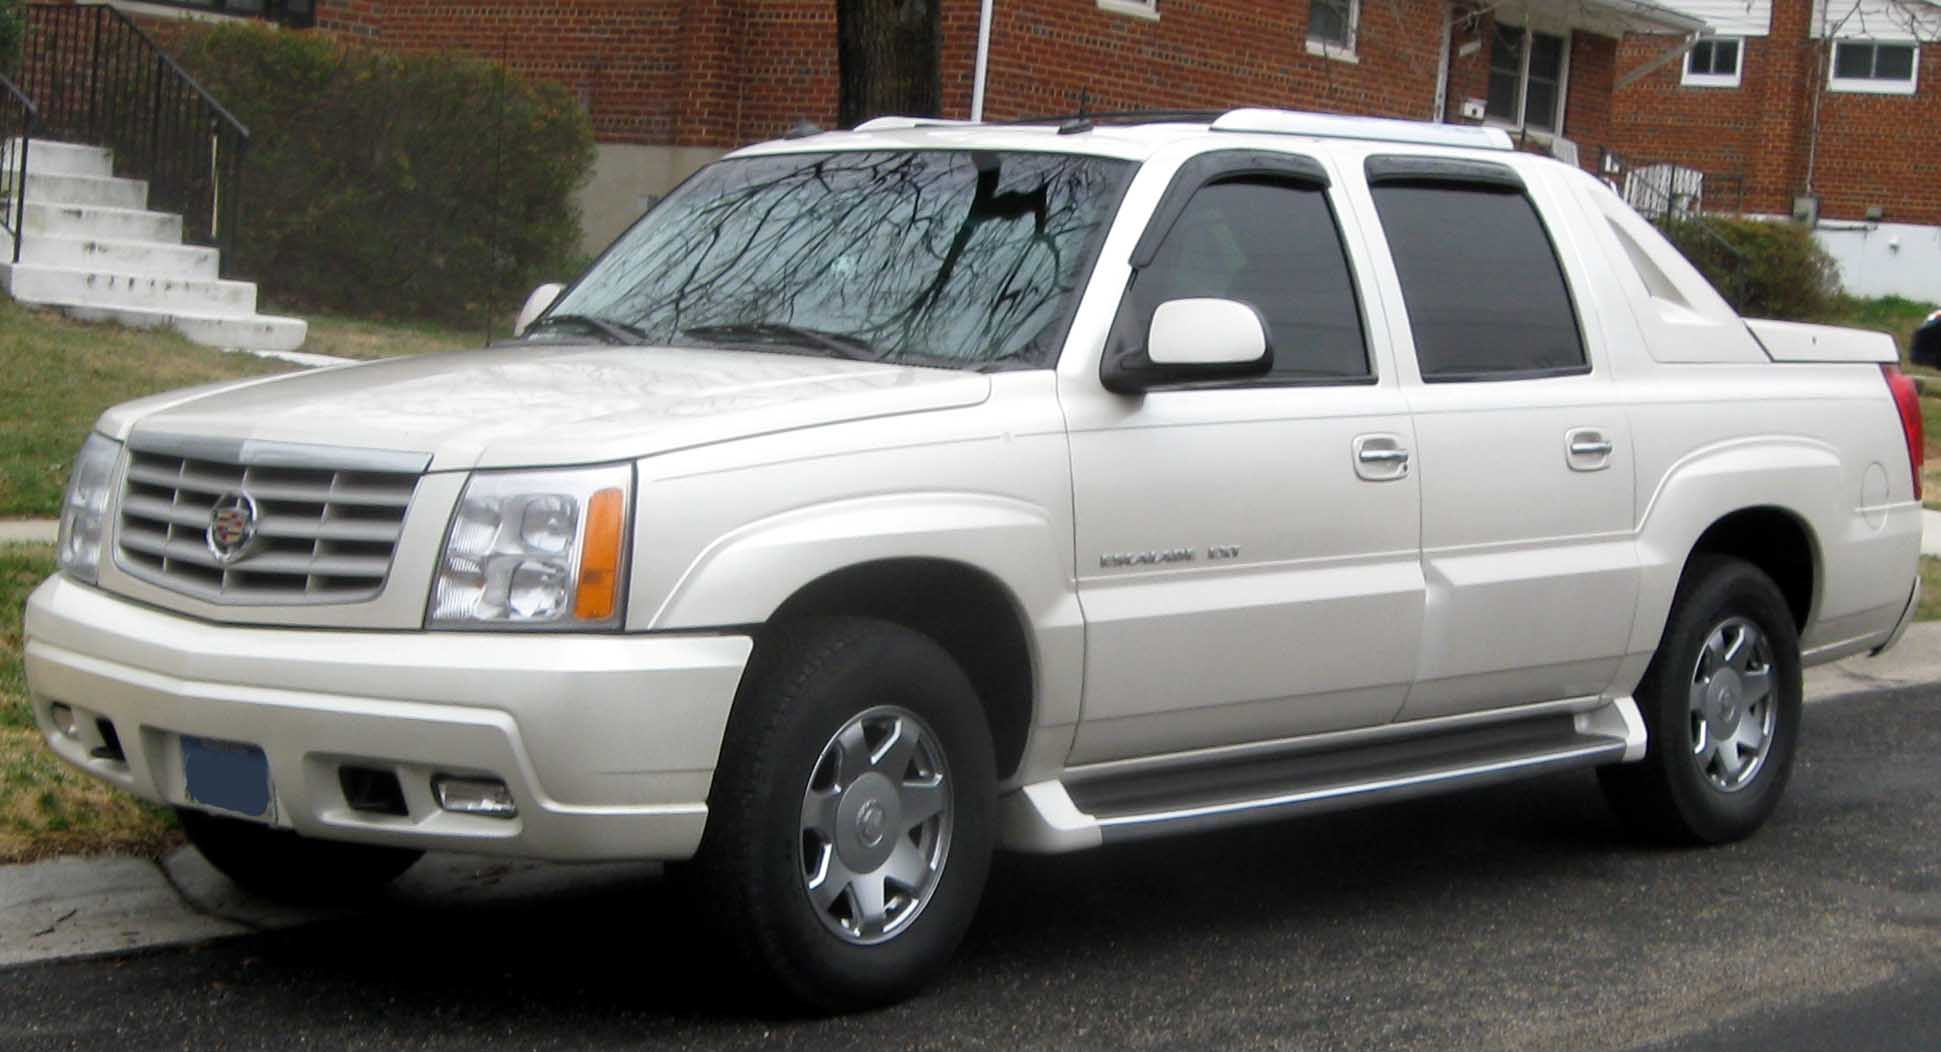 File:1st Cadillac Escalade EXT.jpg - Wikipedia, the free encyclopedia